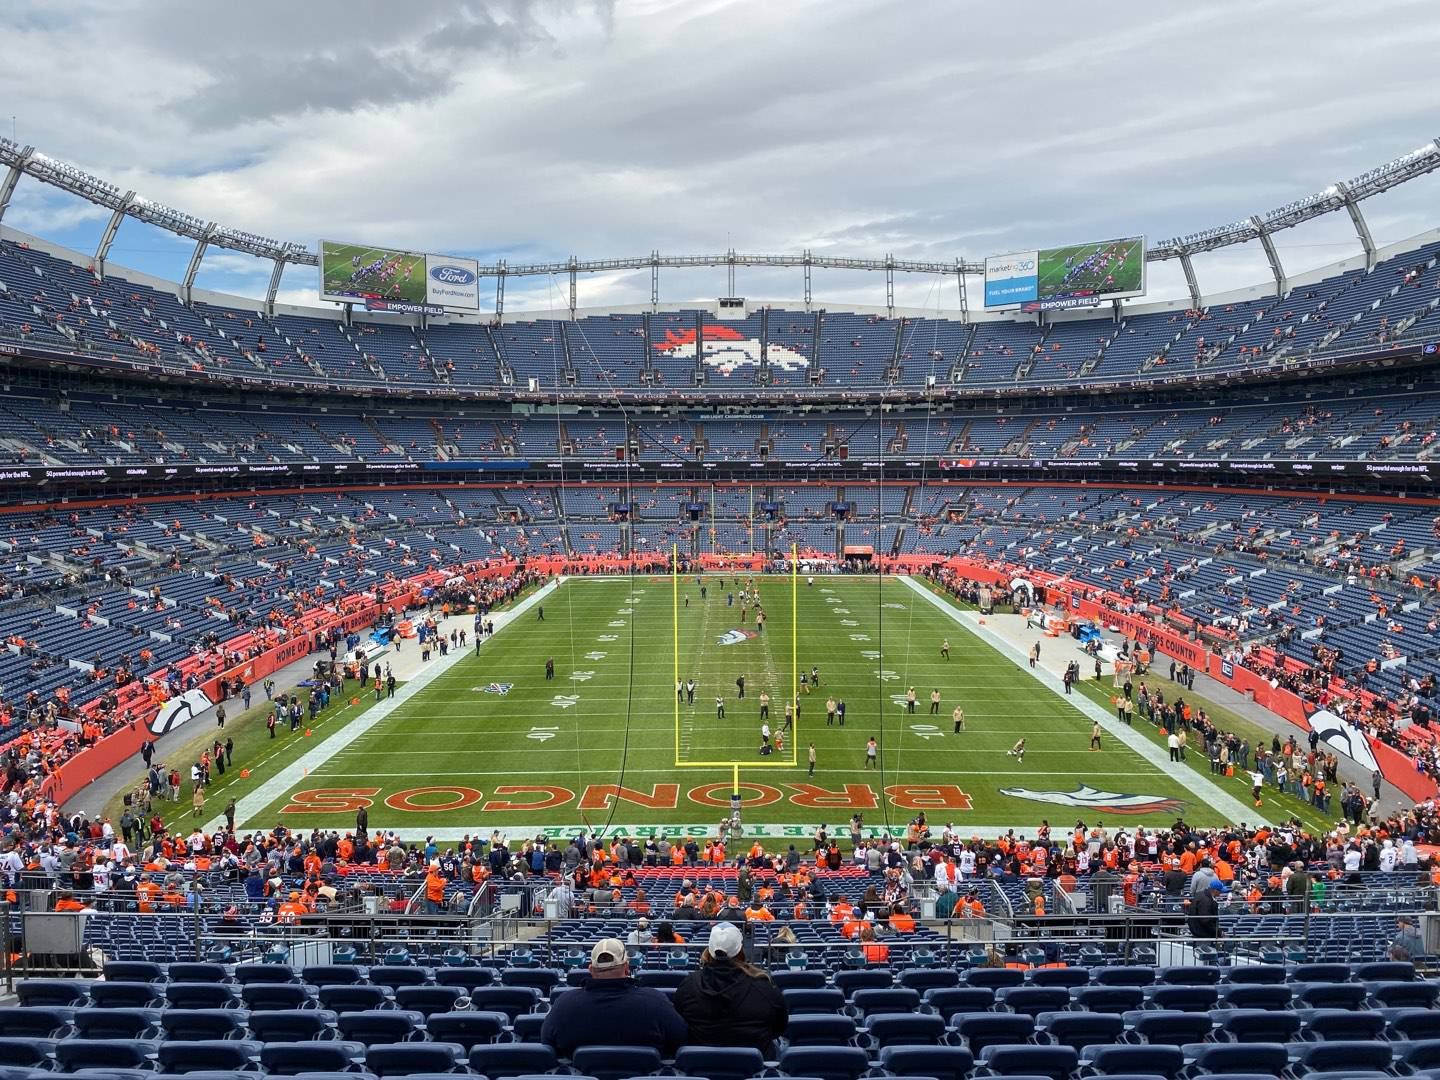 Empower Field at Mile High Stadium Section 232 Row 11 Seat 15